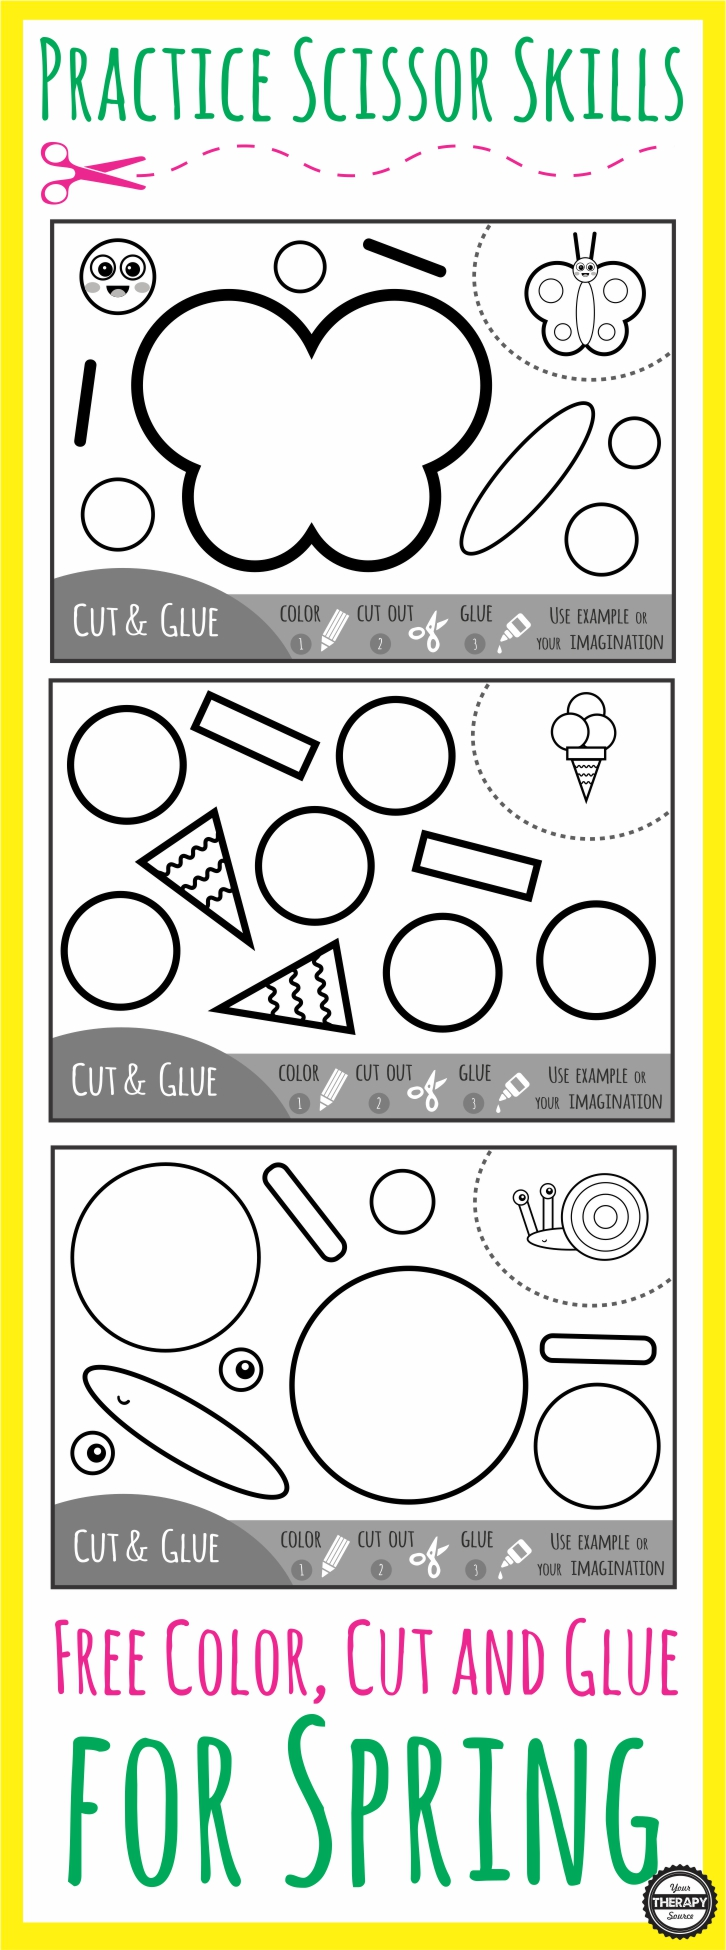 Worksheet Scissor Skills Worksheets Worksheet Fun Worksheet Study Site